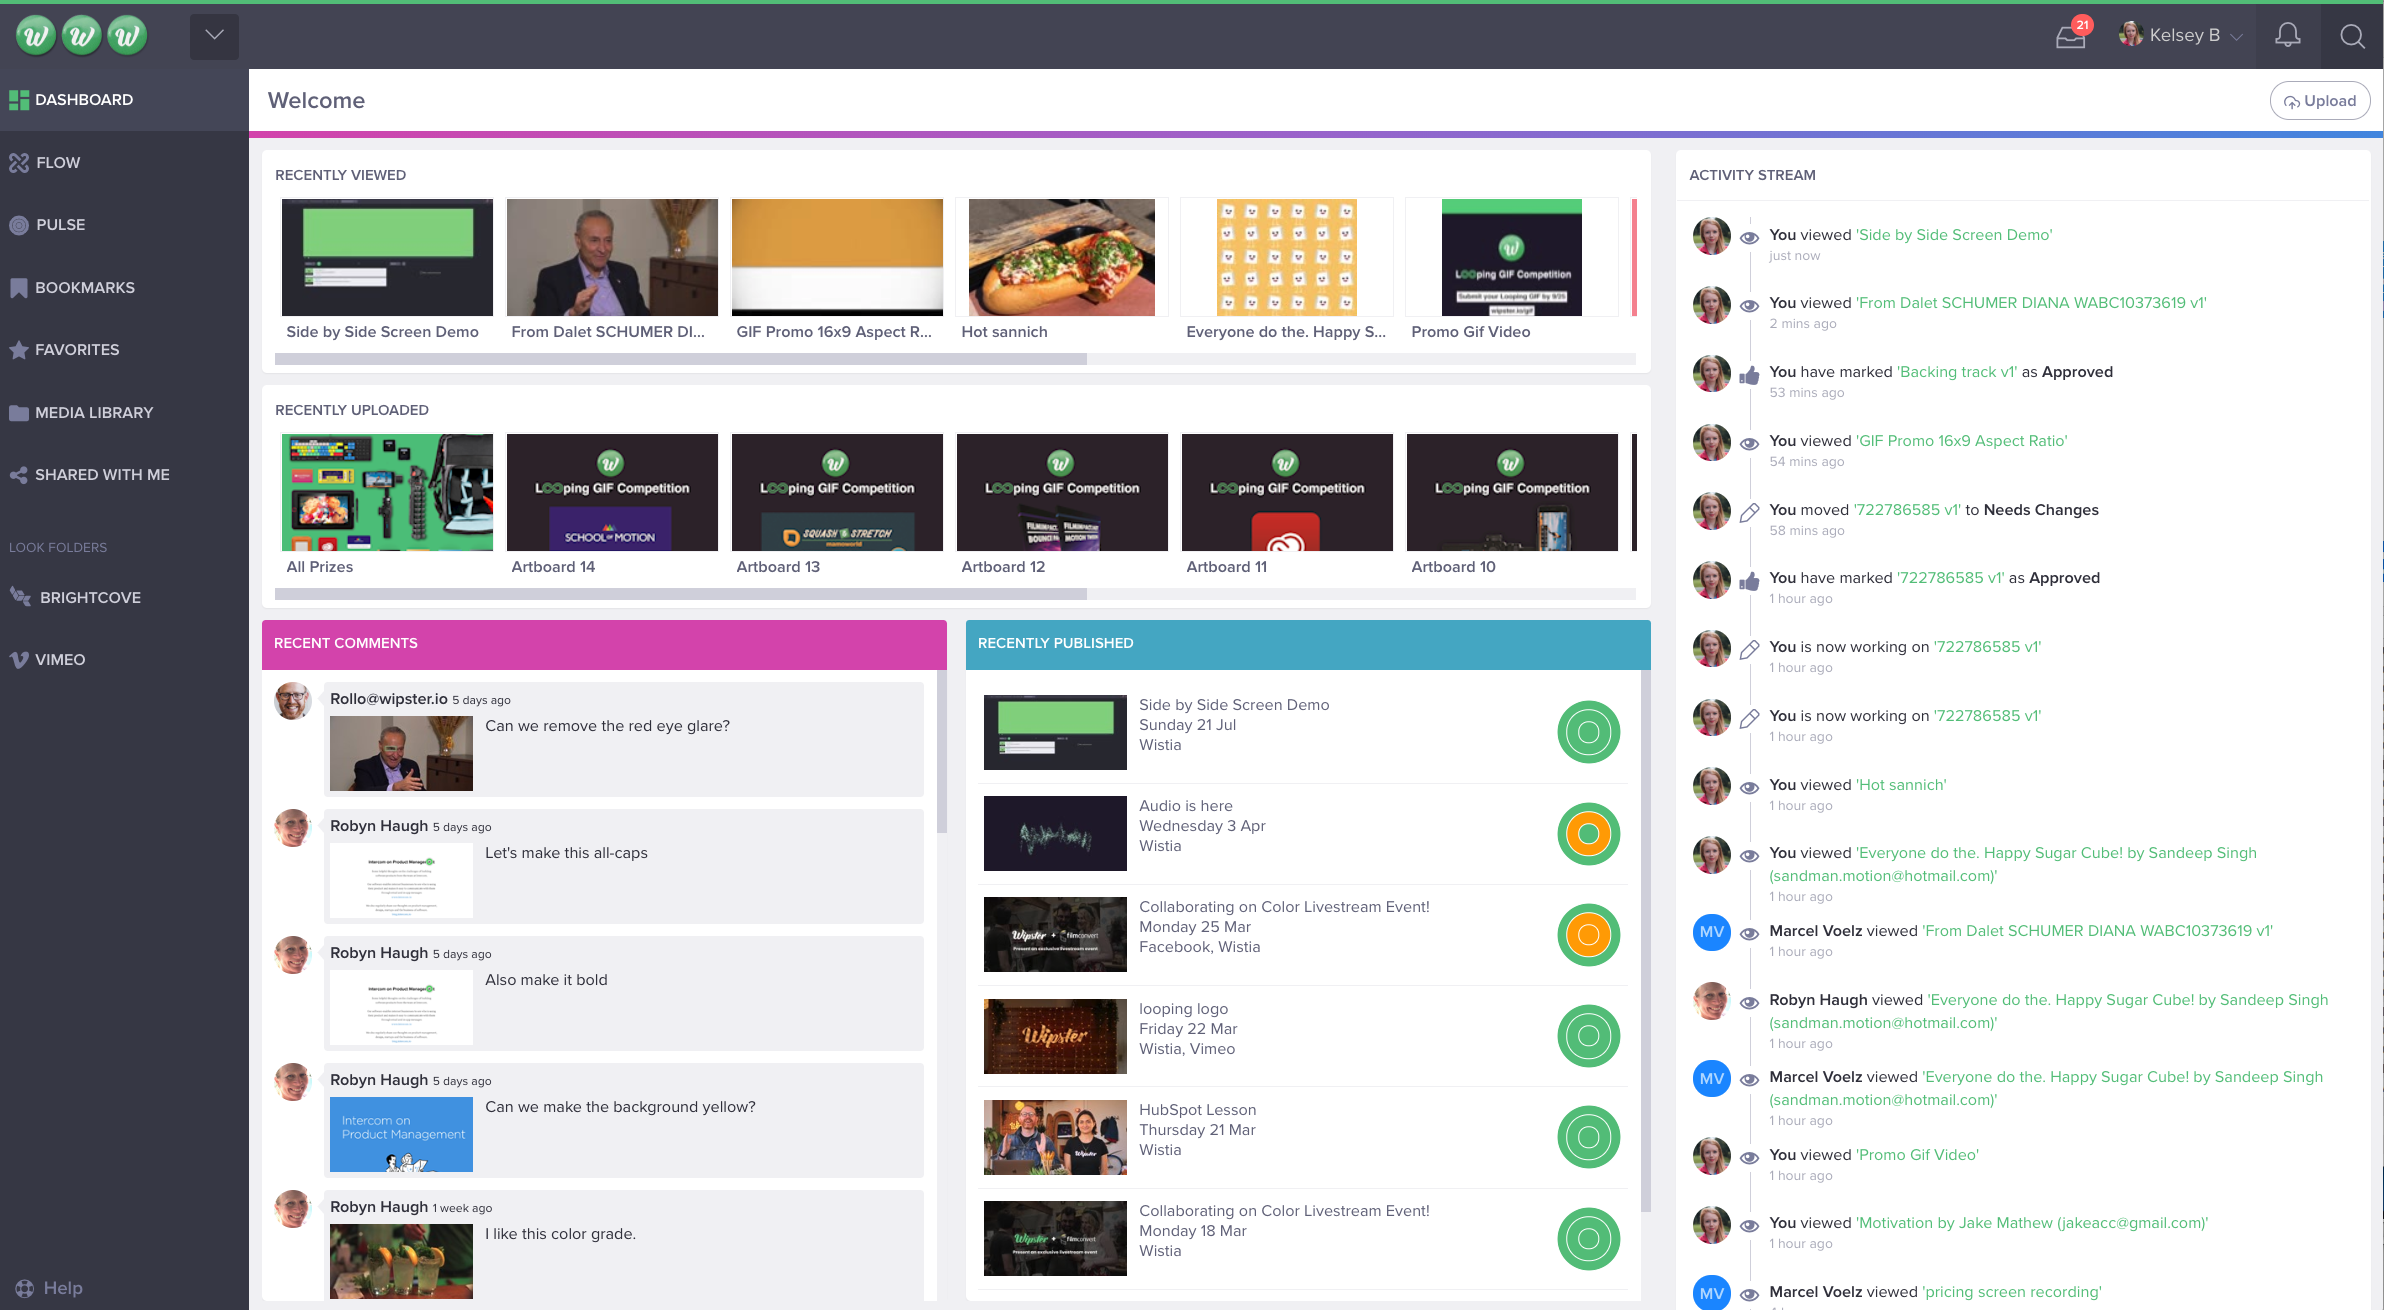 This is the Dashboard view. On the right, you can see your activity stream.